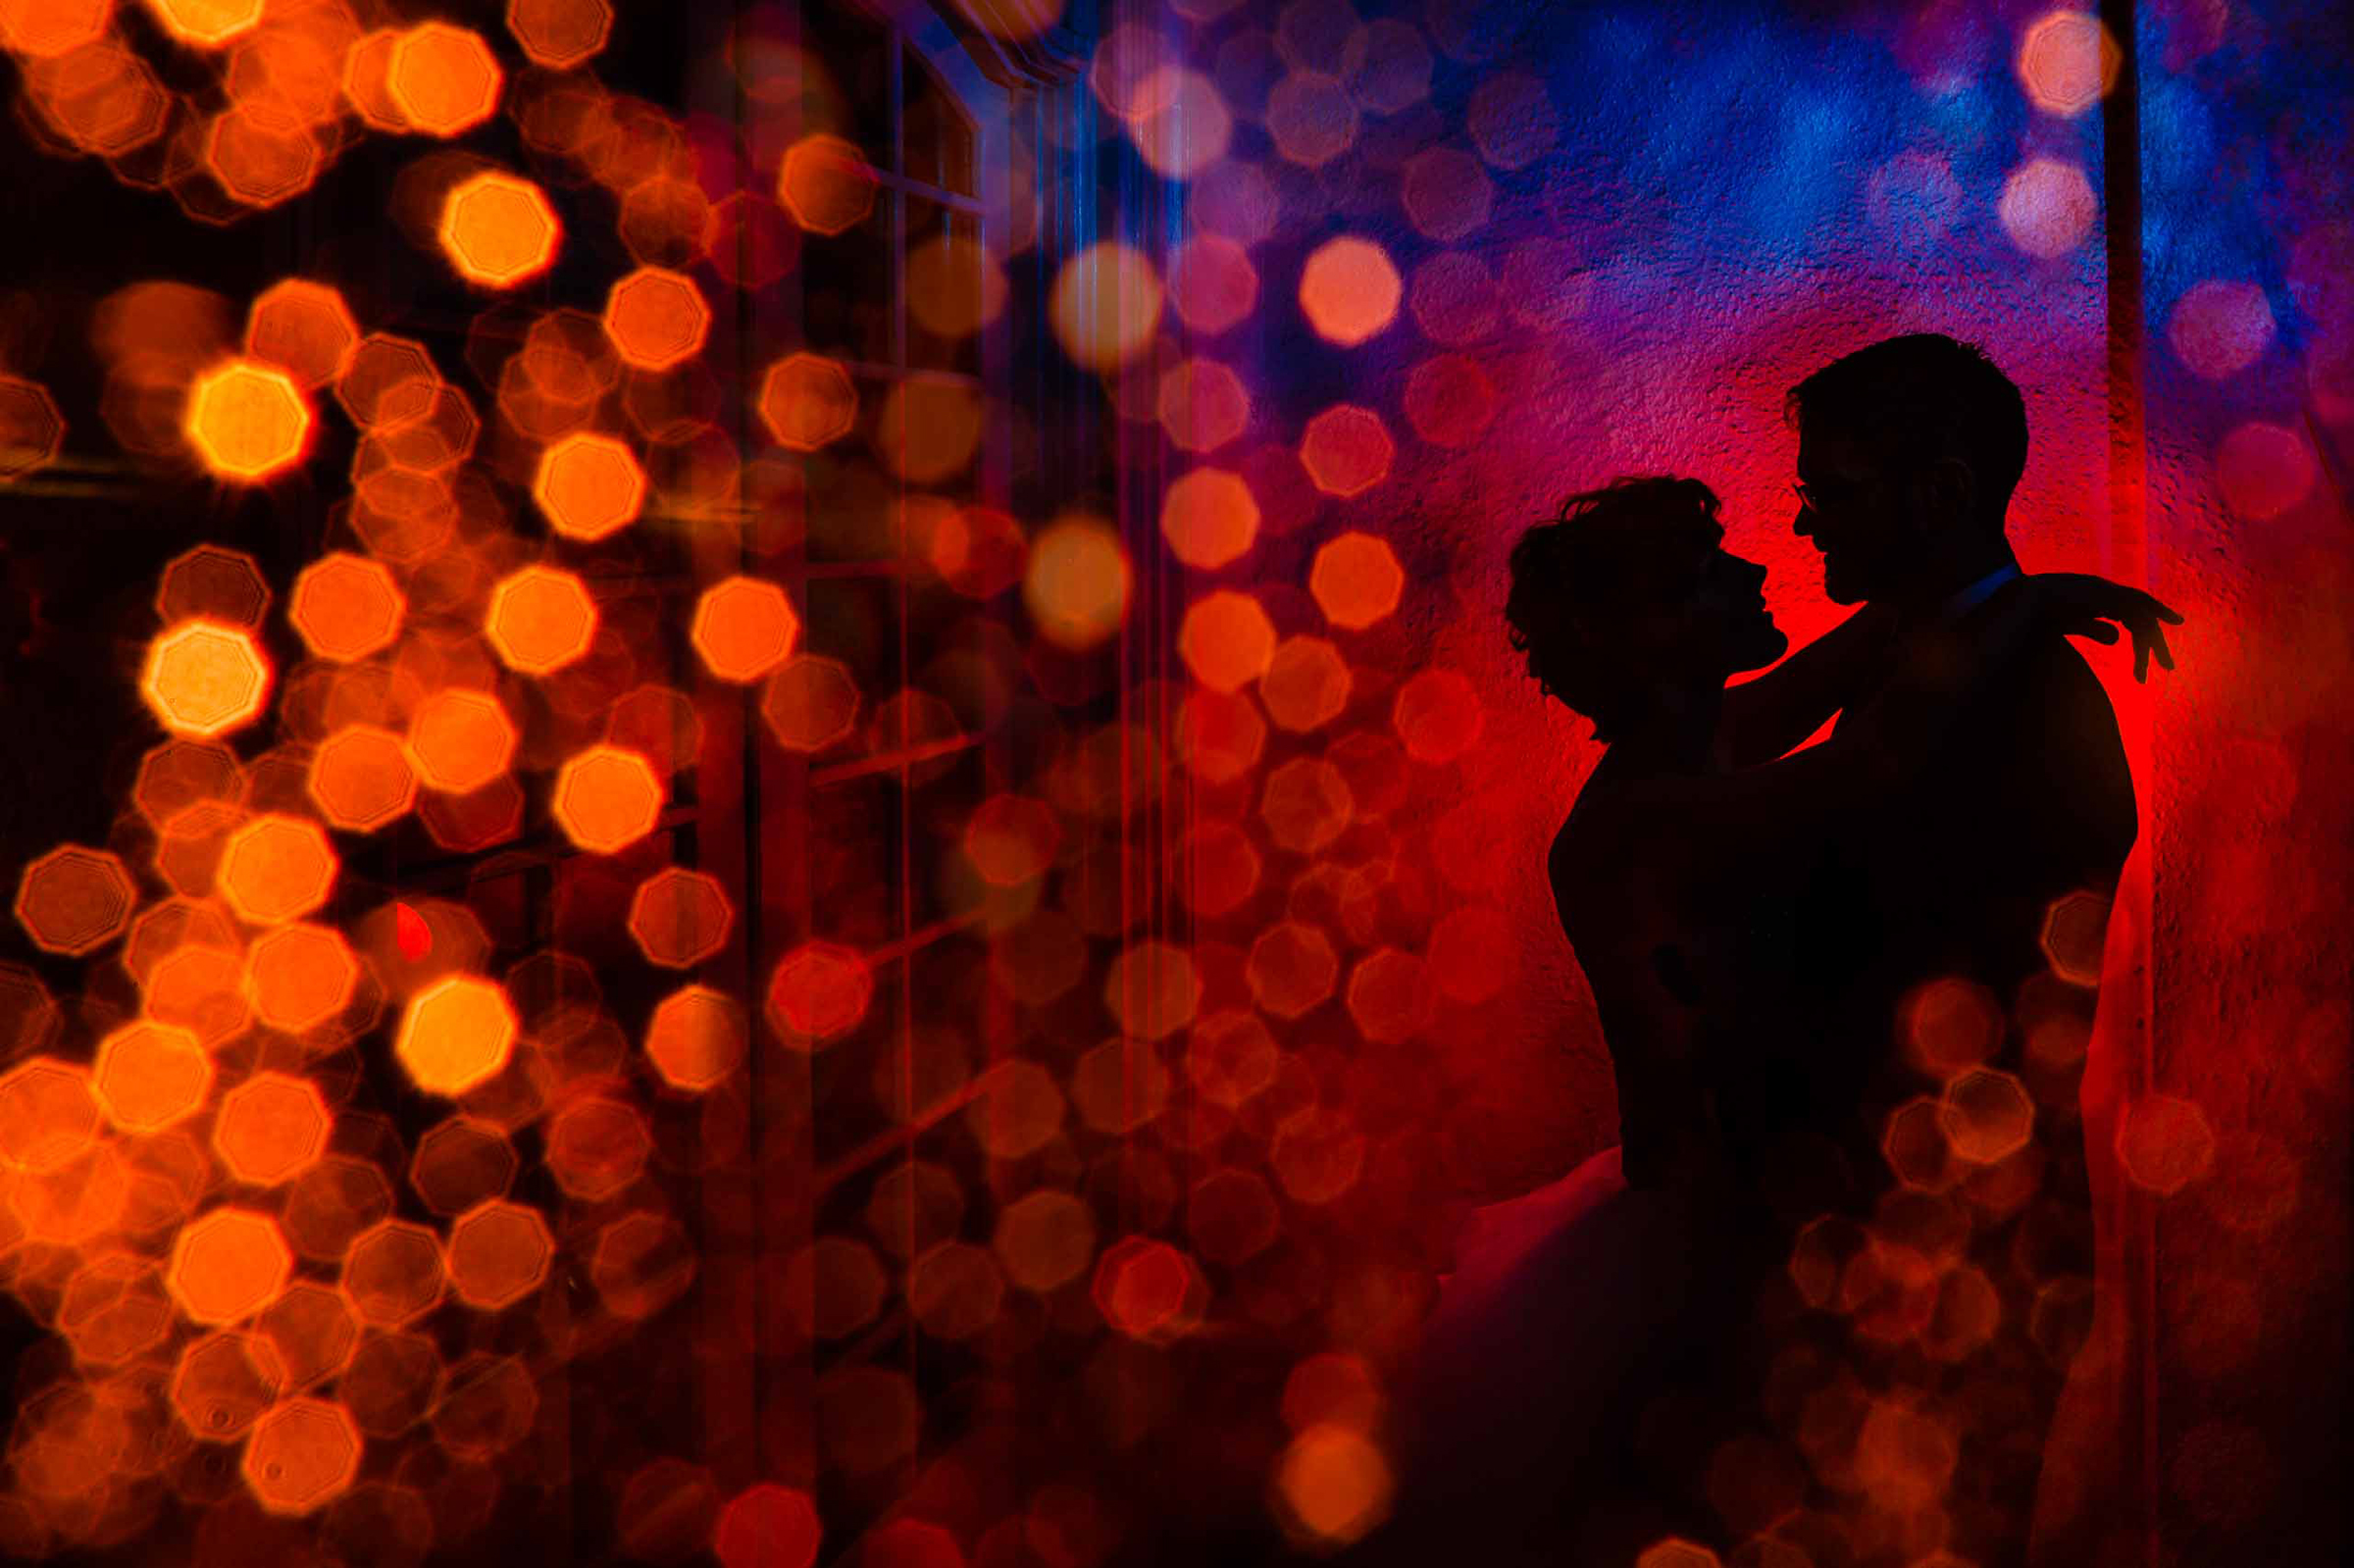 50 best wedding photo concepts - bokeh silhouette in red and orange by JOS & TREE